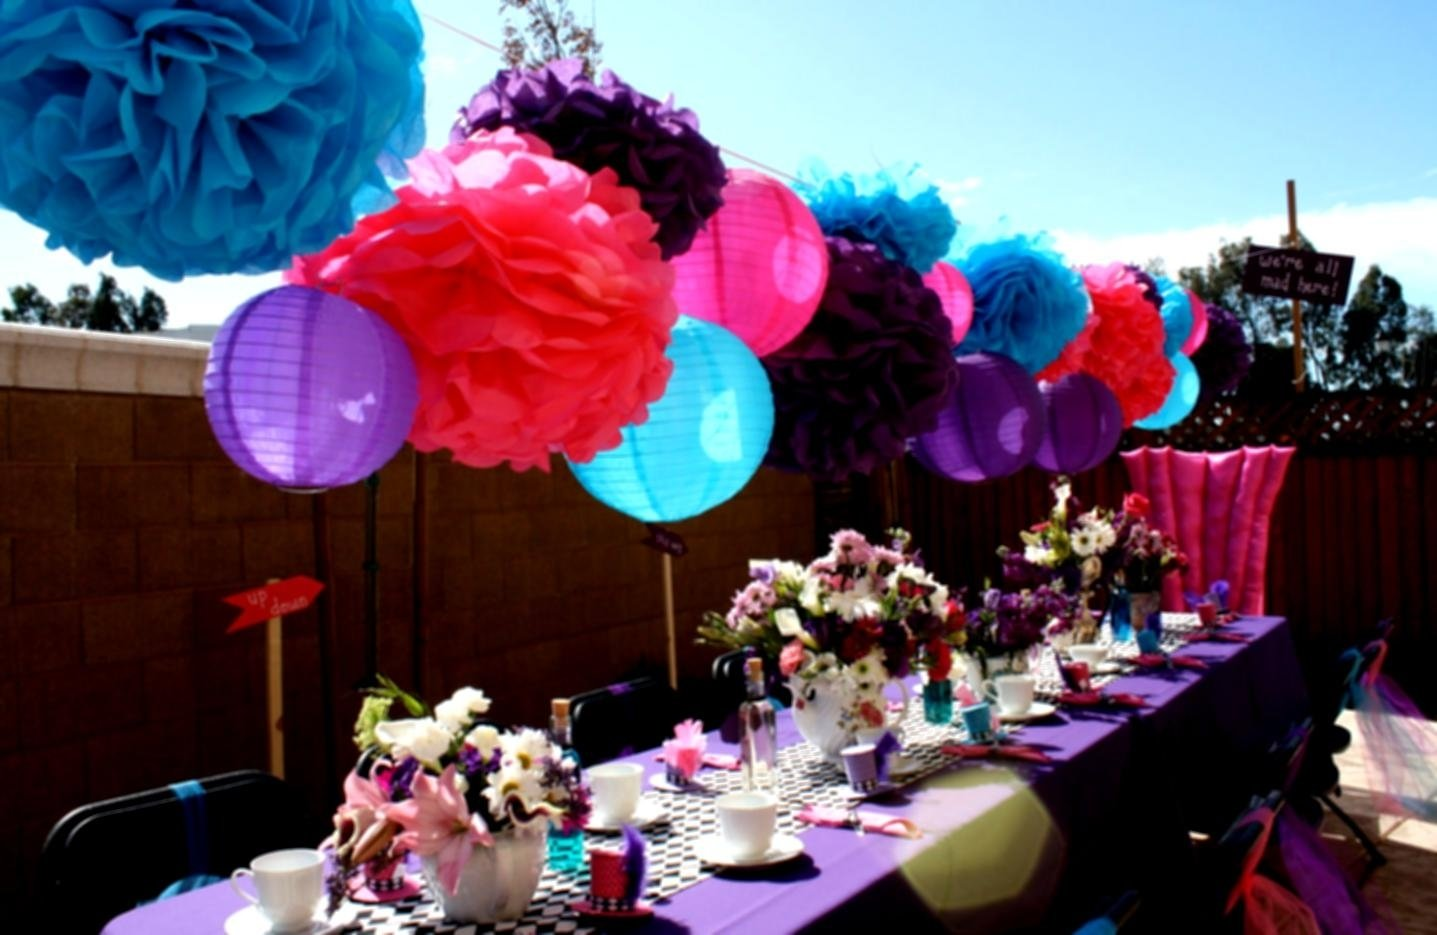 10 Awesome Party Theme Ideas For Adults party theme ideas for adults birthday decoration winter homelk 2